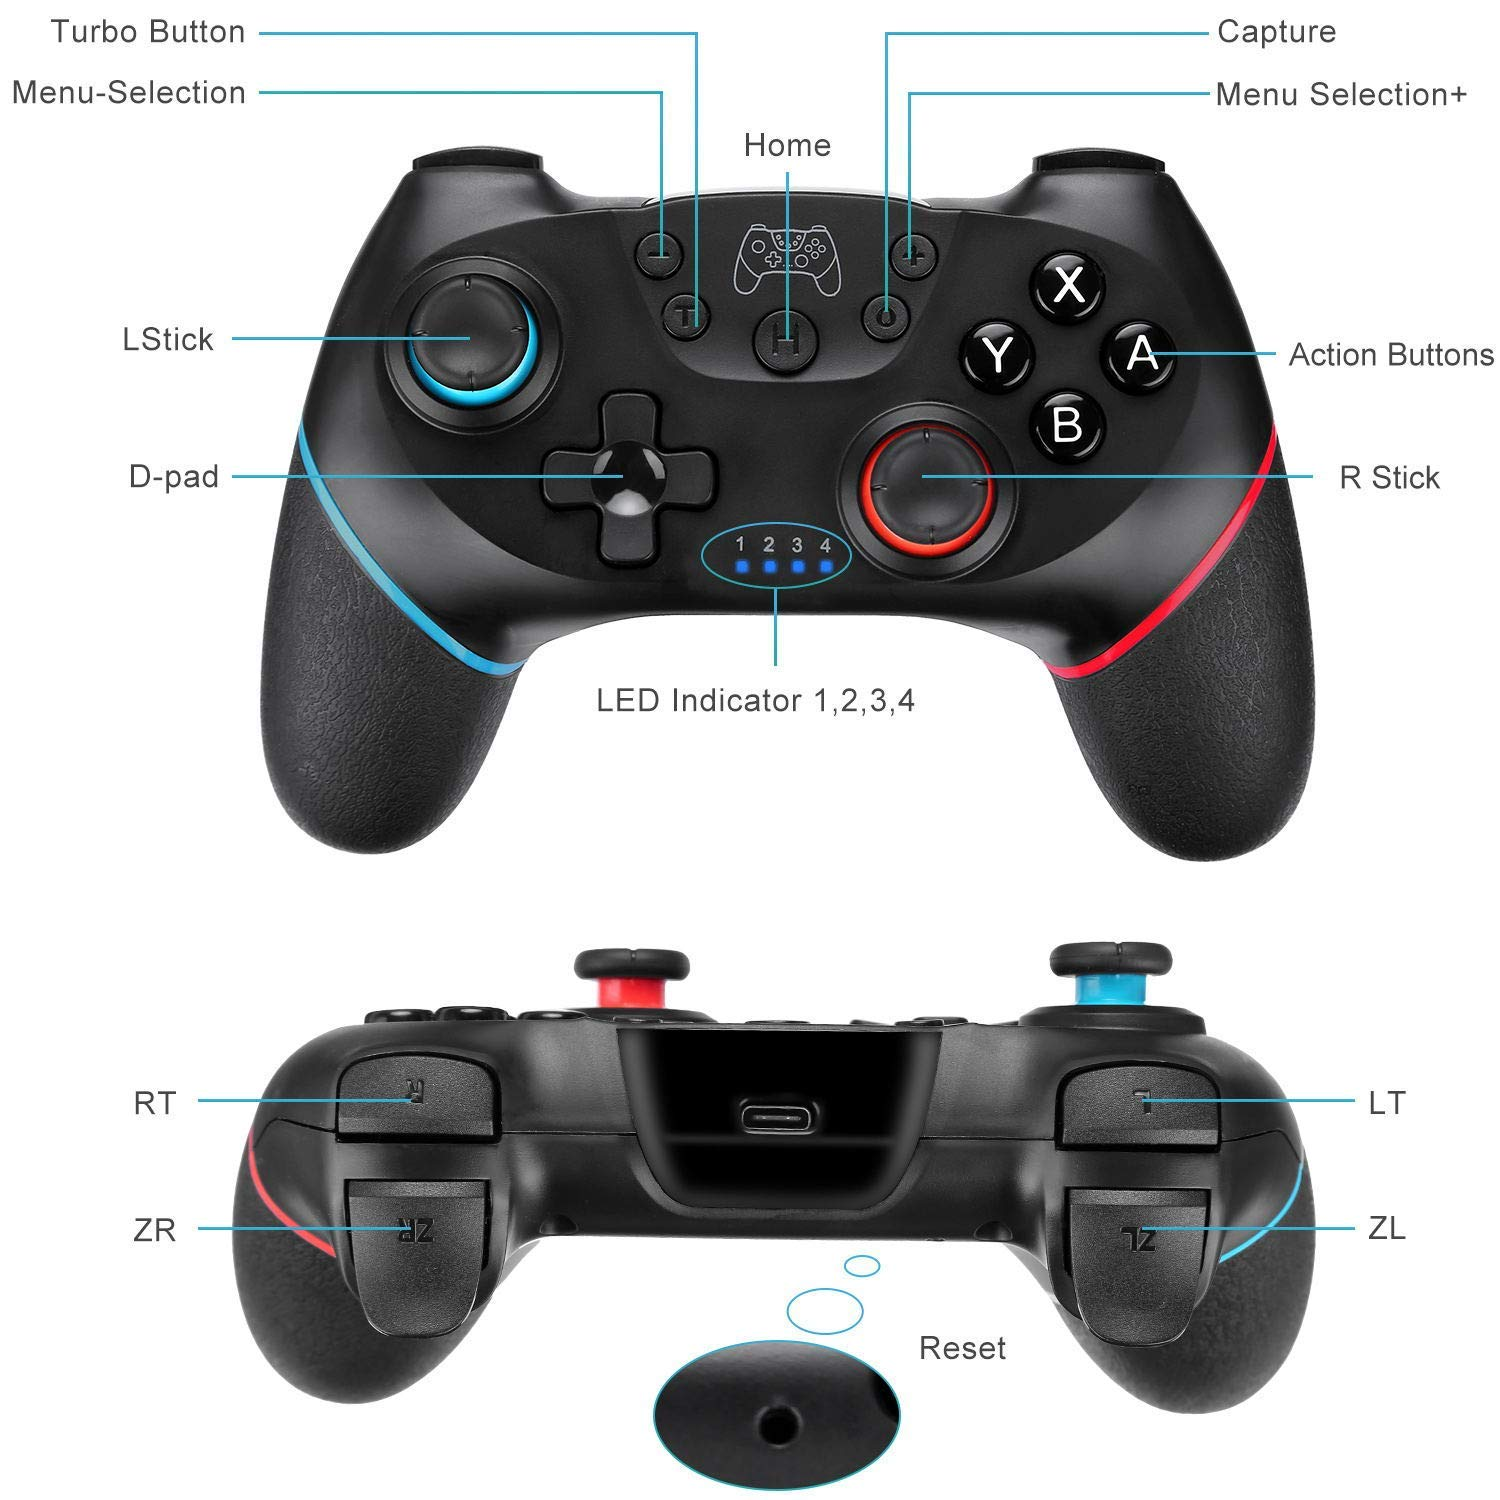 fbe2d6677d6 Wireless Controller for Nintendo Switch, TGJOR Wireless Switch Gamepad  Compatible with Nintendo Switch Console, Built-in Motor with Dual Shock, ...